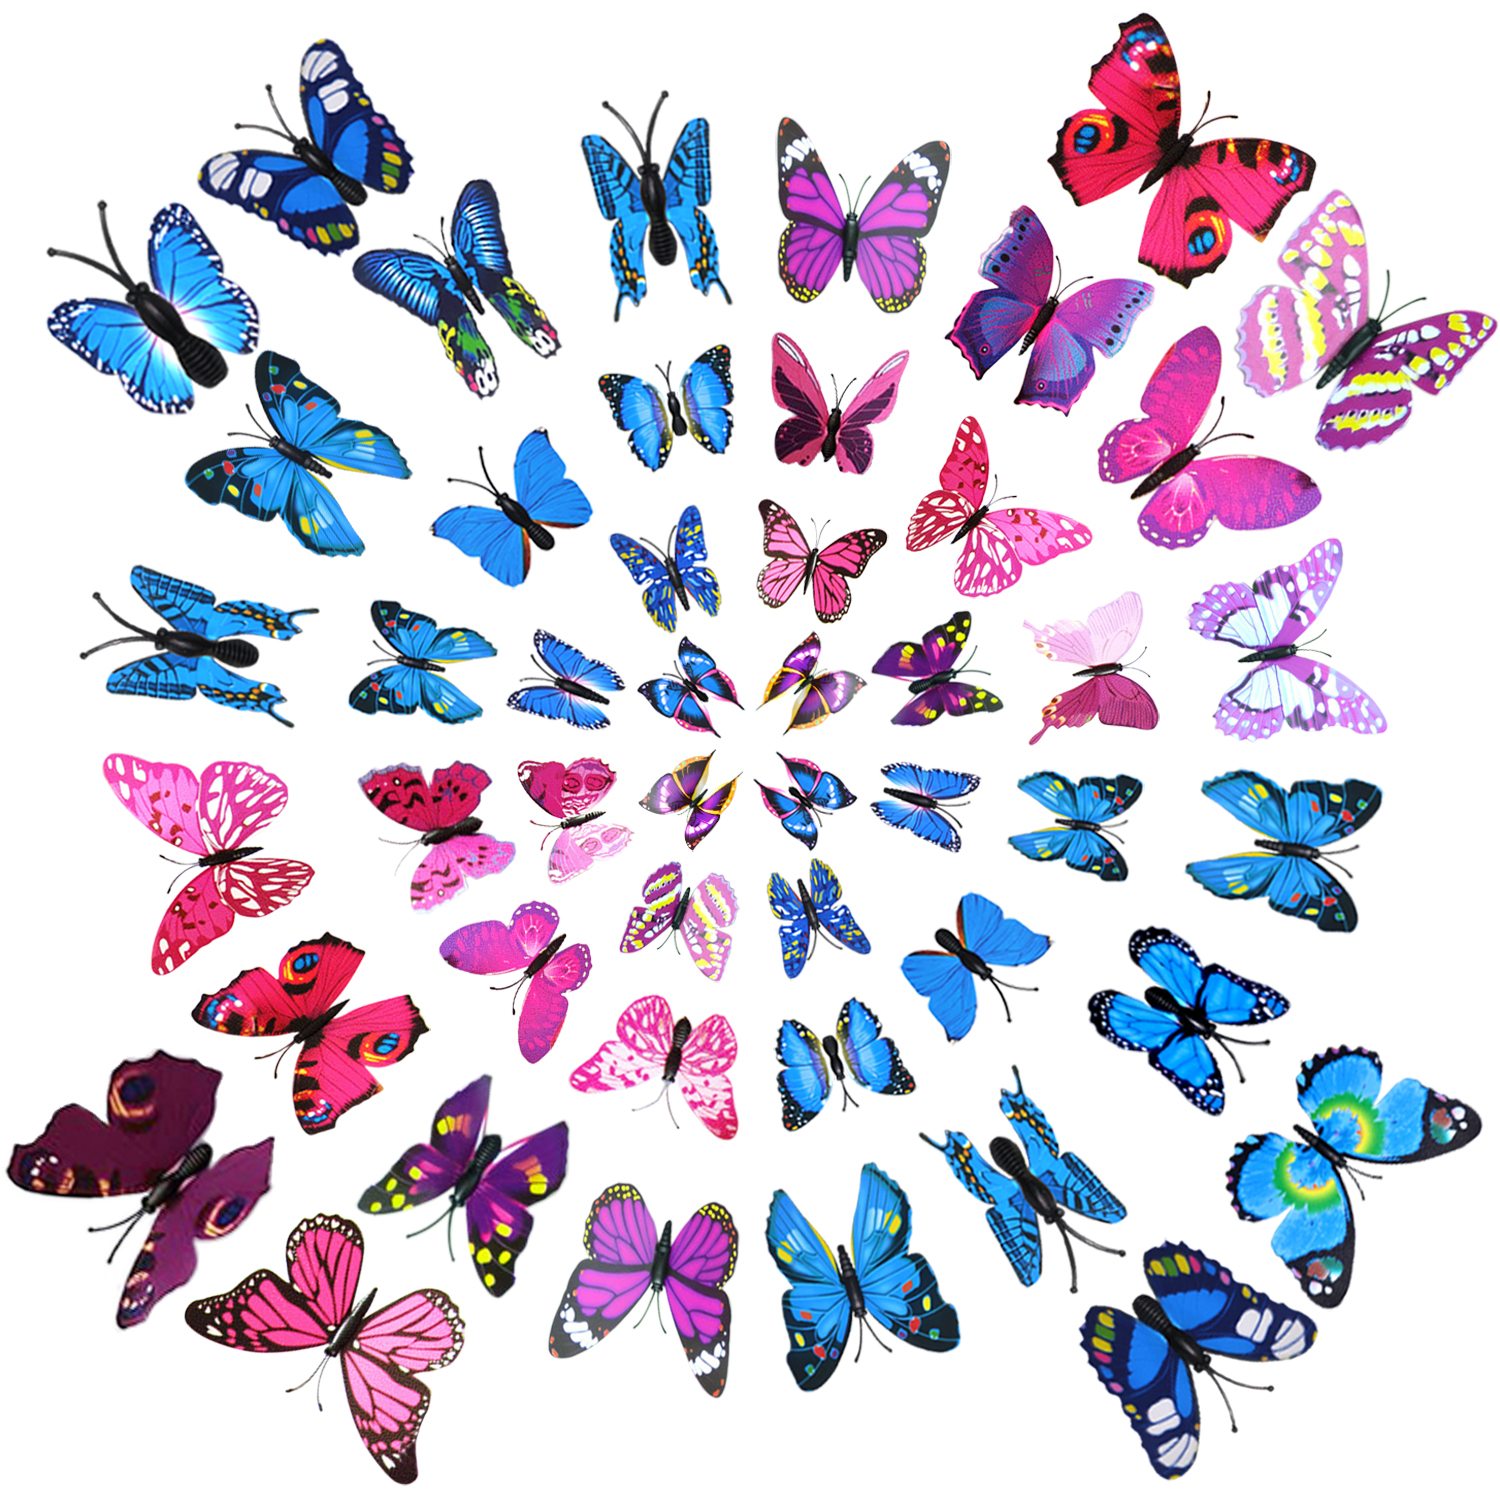 wall stickers Fridge Magnets, Outgeek 48Pcs 3D Butterfly Refrigerator Magnets Wall Stickers for bathroom  Men Women Girls Boys Home Art Decor